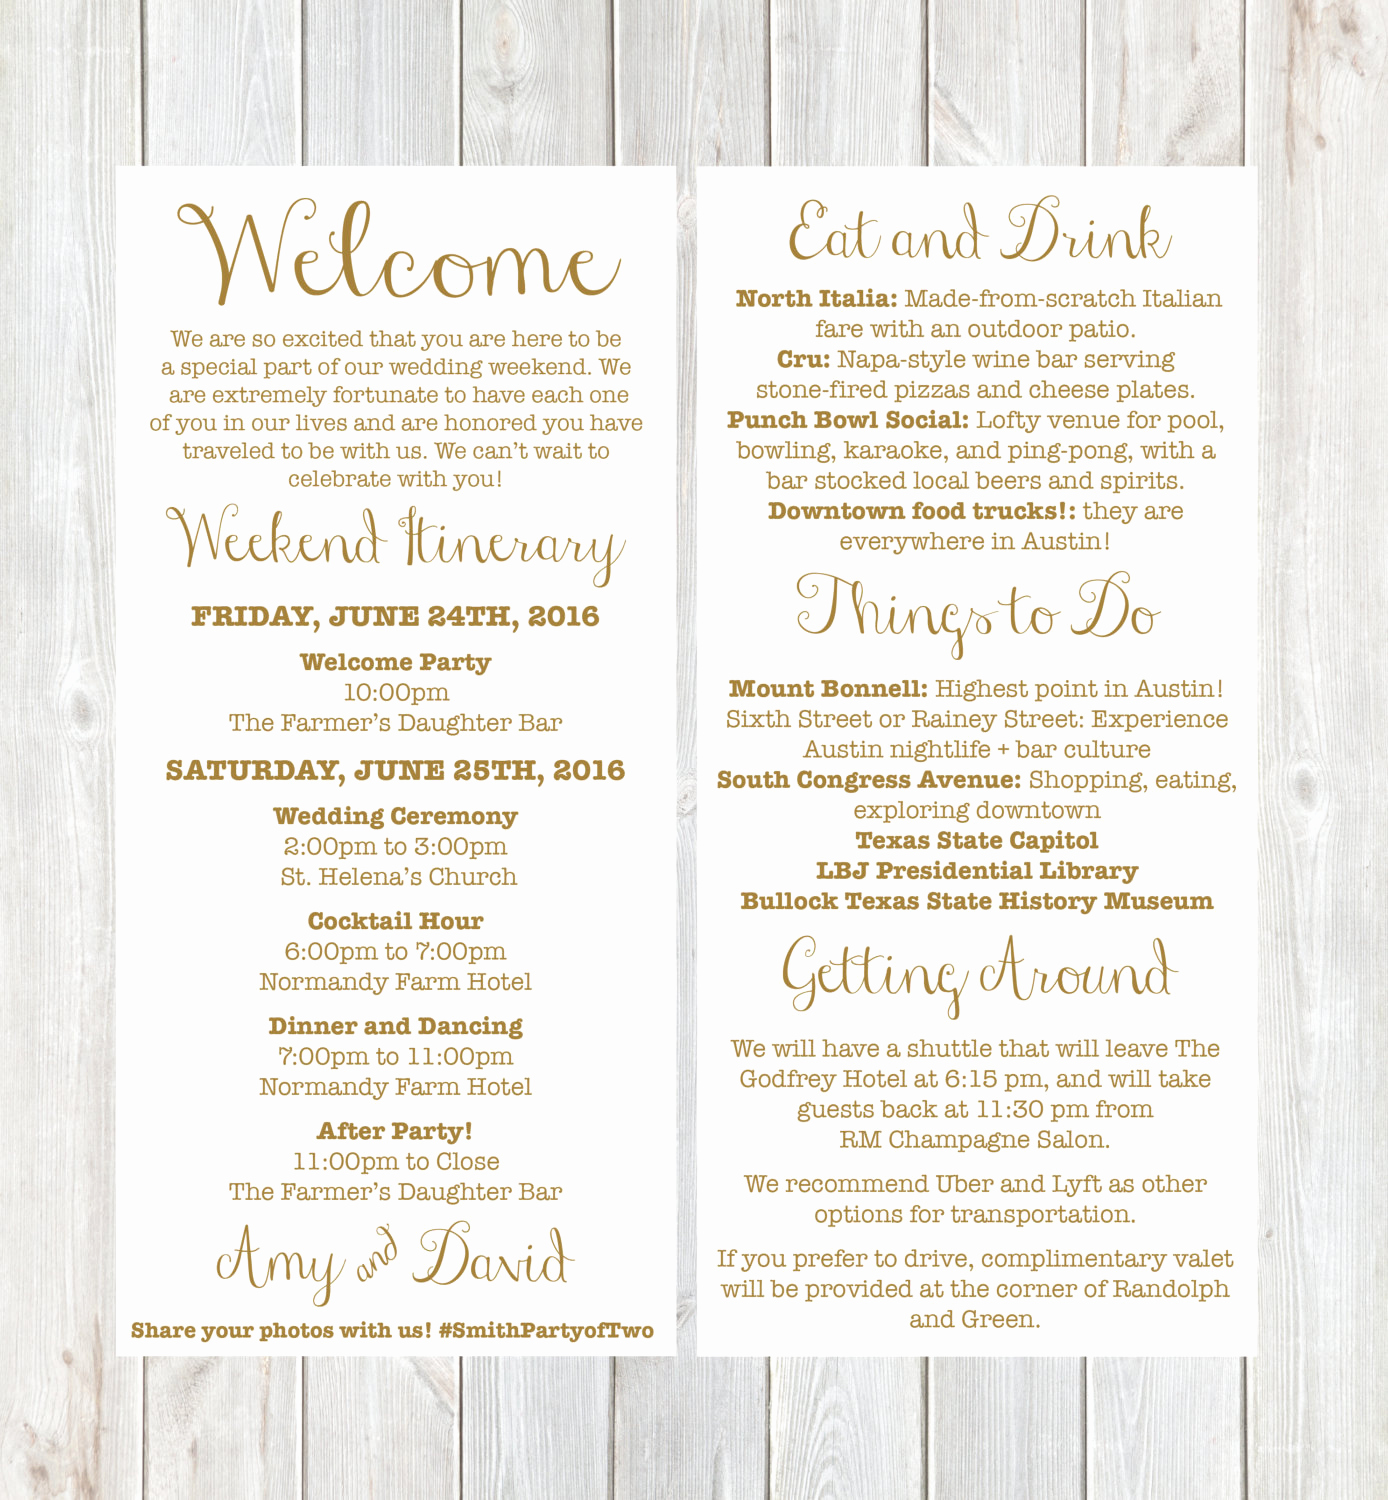 Wedding Weekend Itinerary Template Best Of Wel E Letter Weekend Itinerary Wedding Itinerary Gold